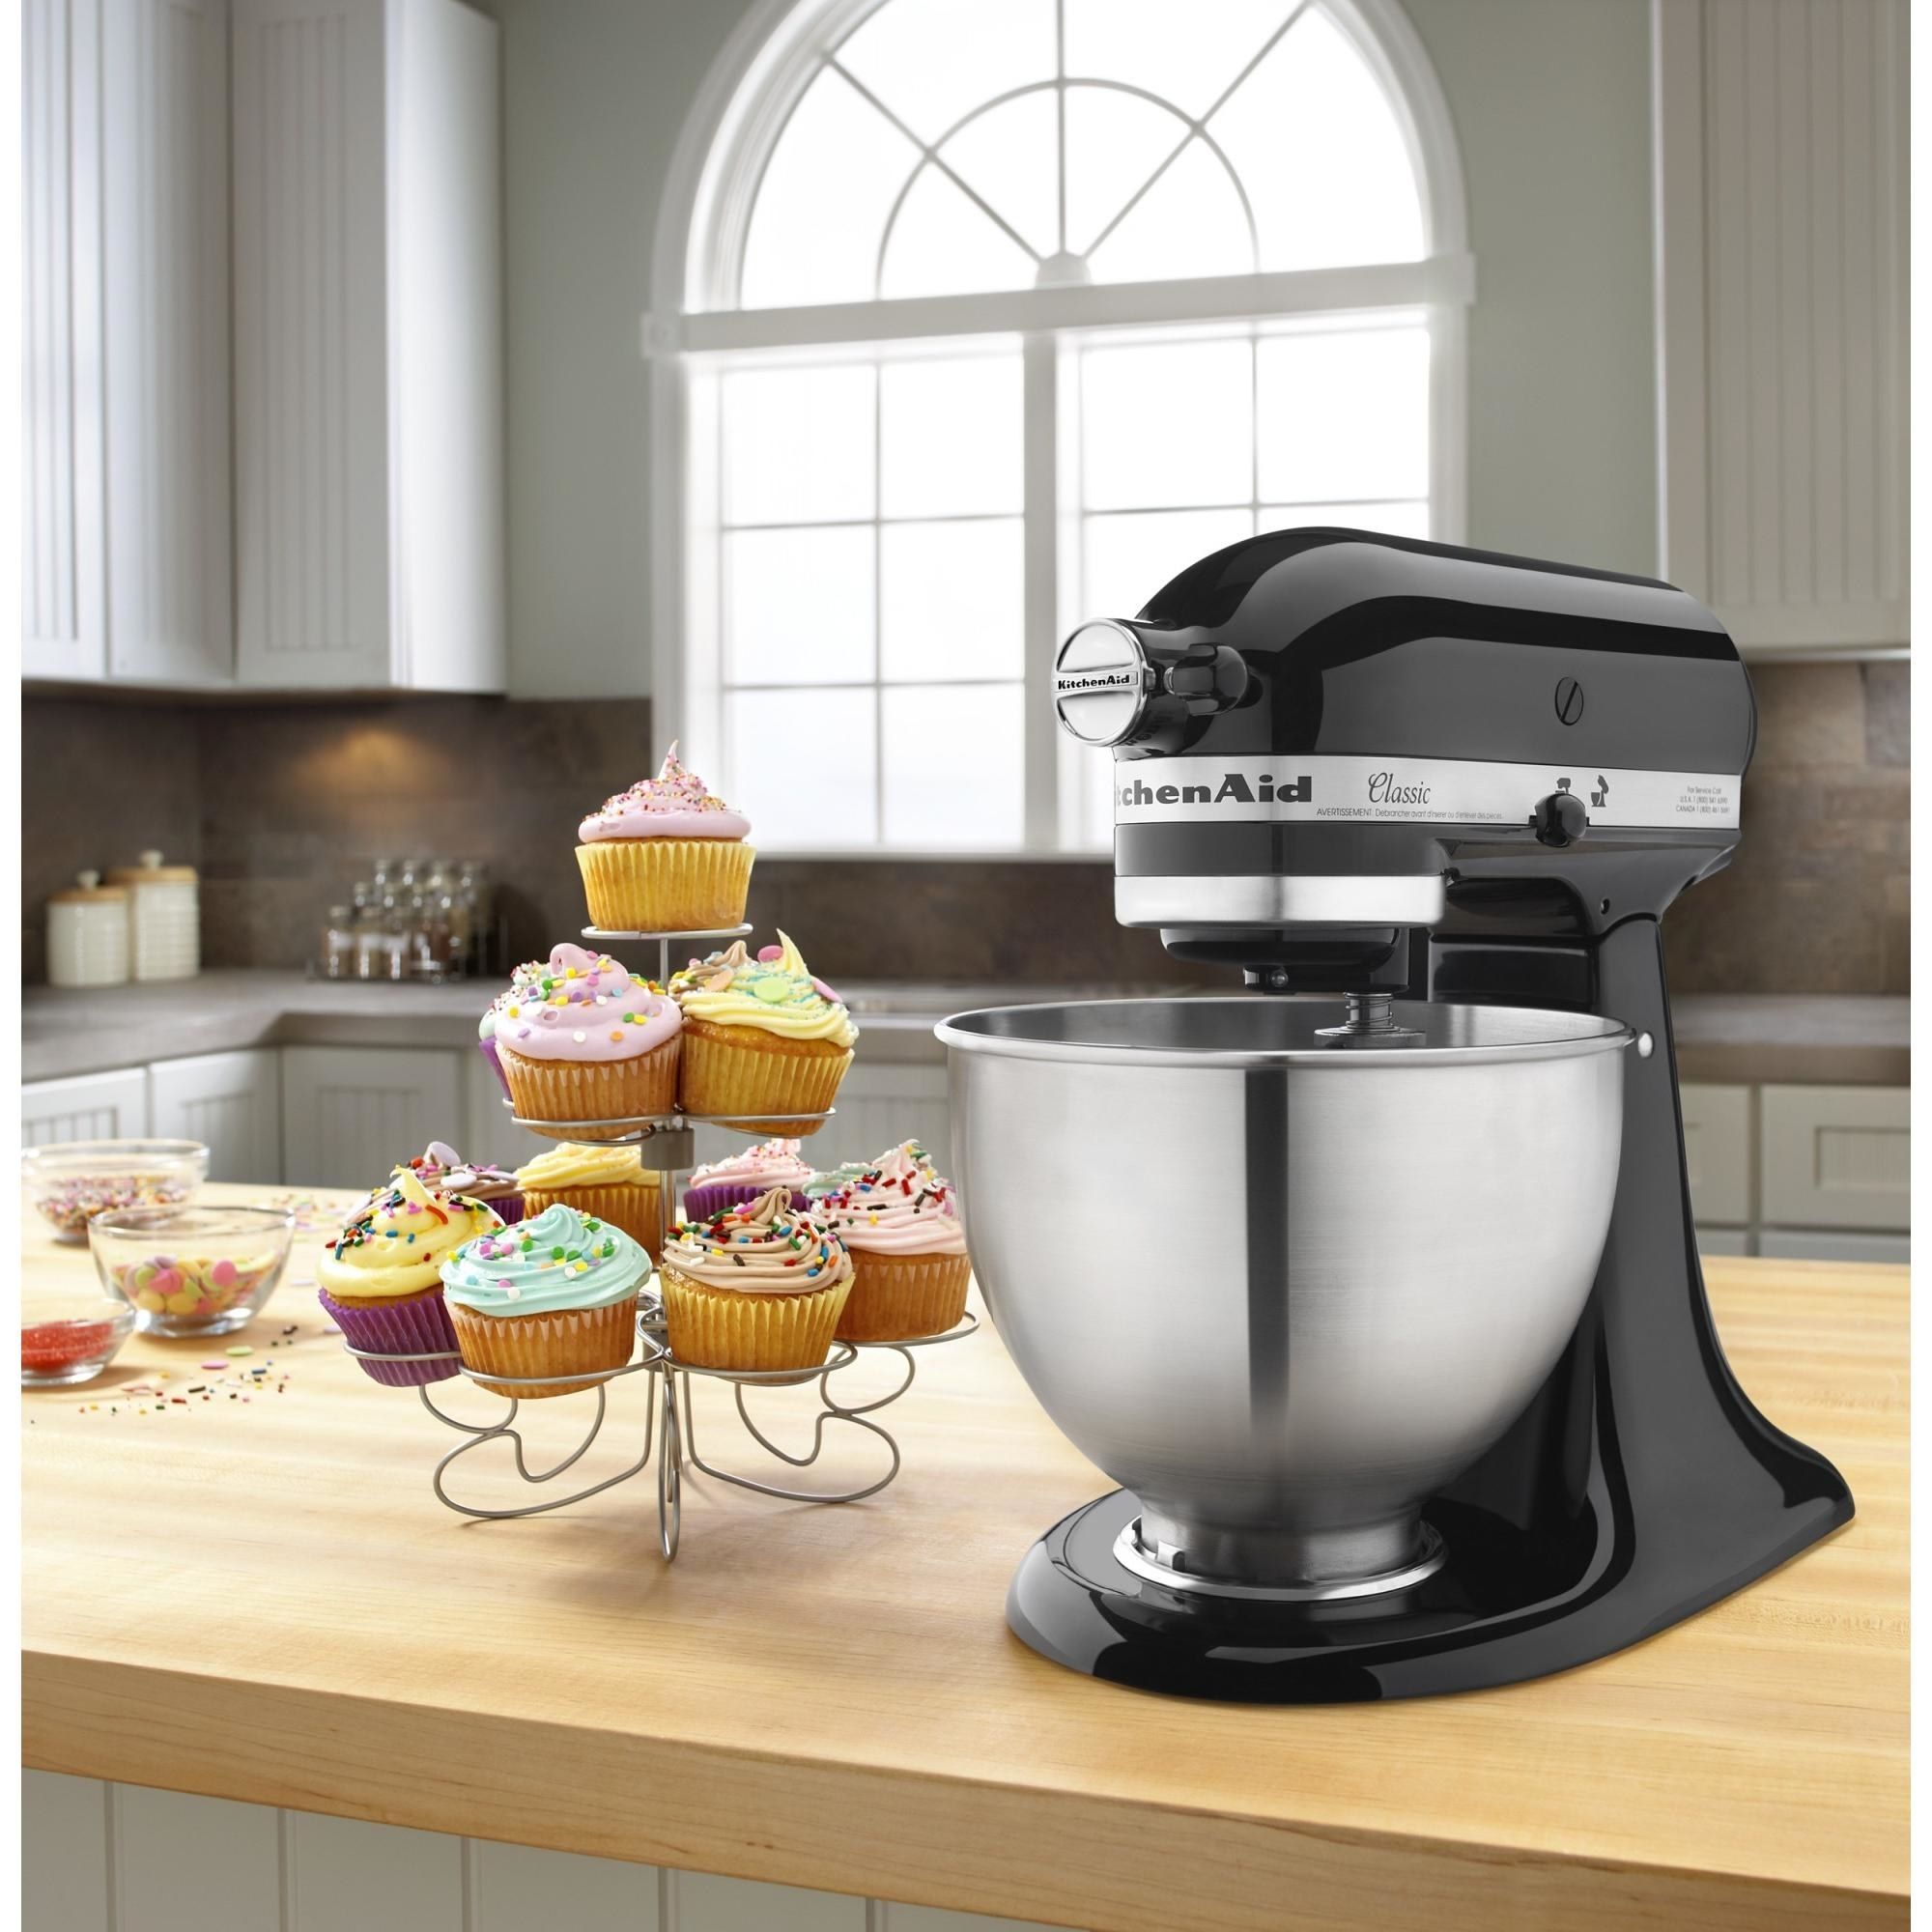 The black KitchenAid mixer, pictured in a kitchen with cupcakes